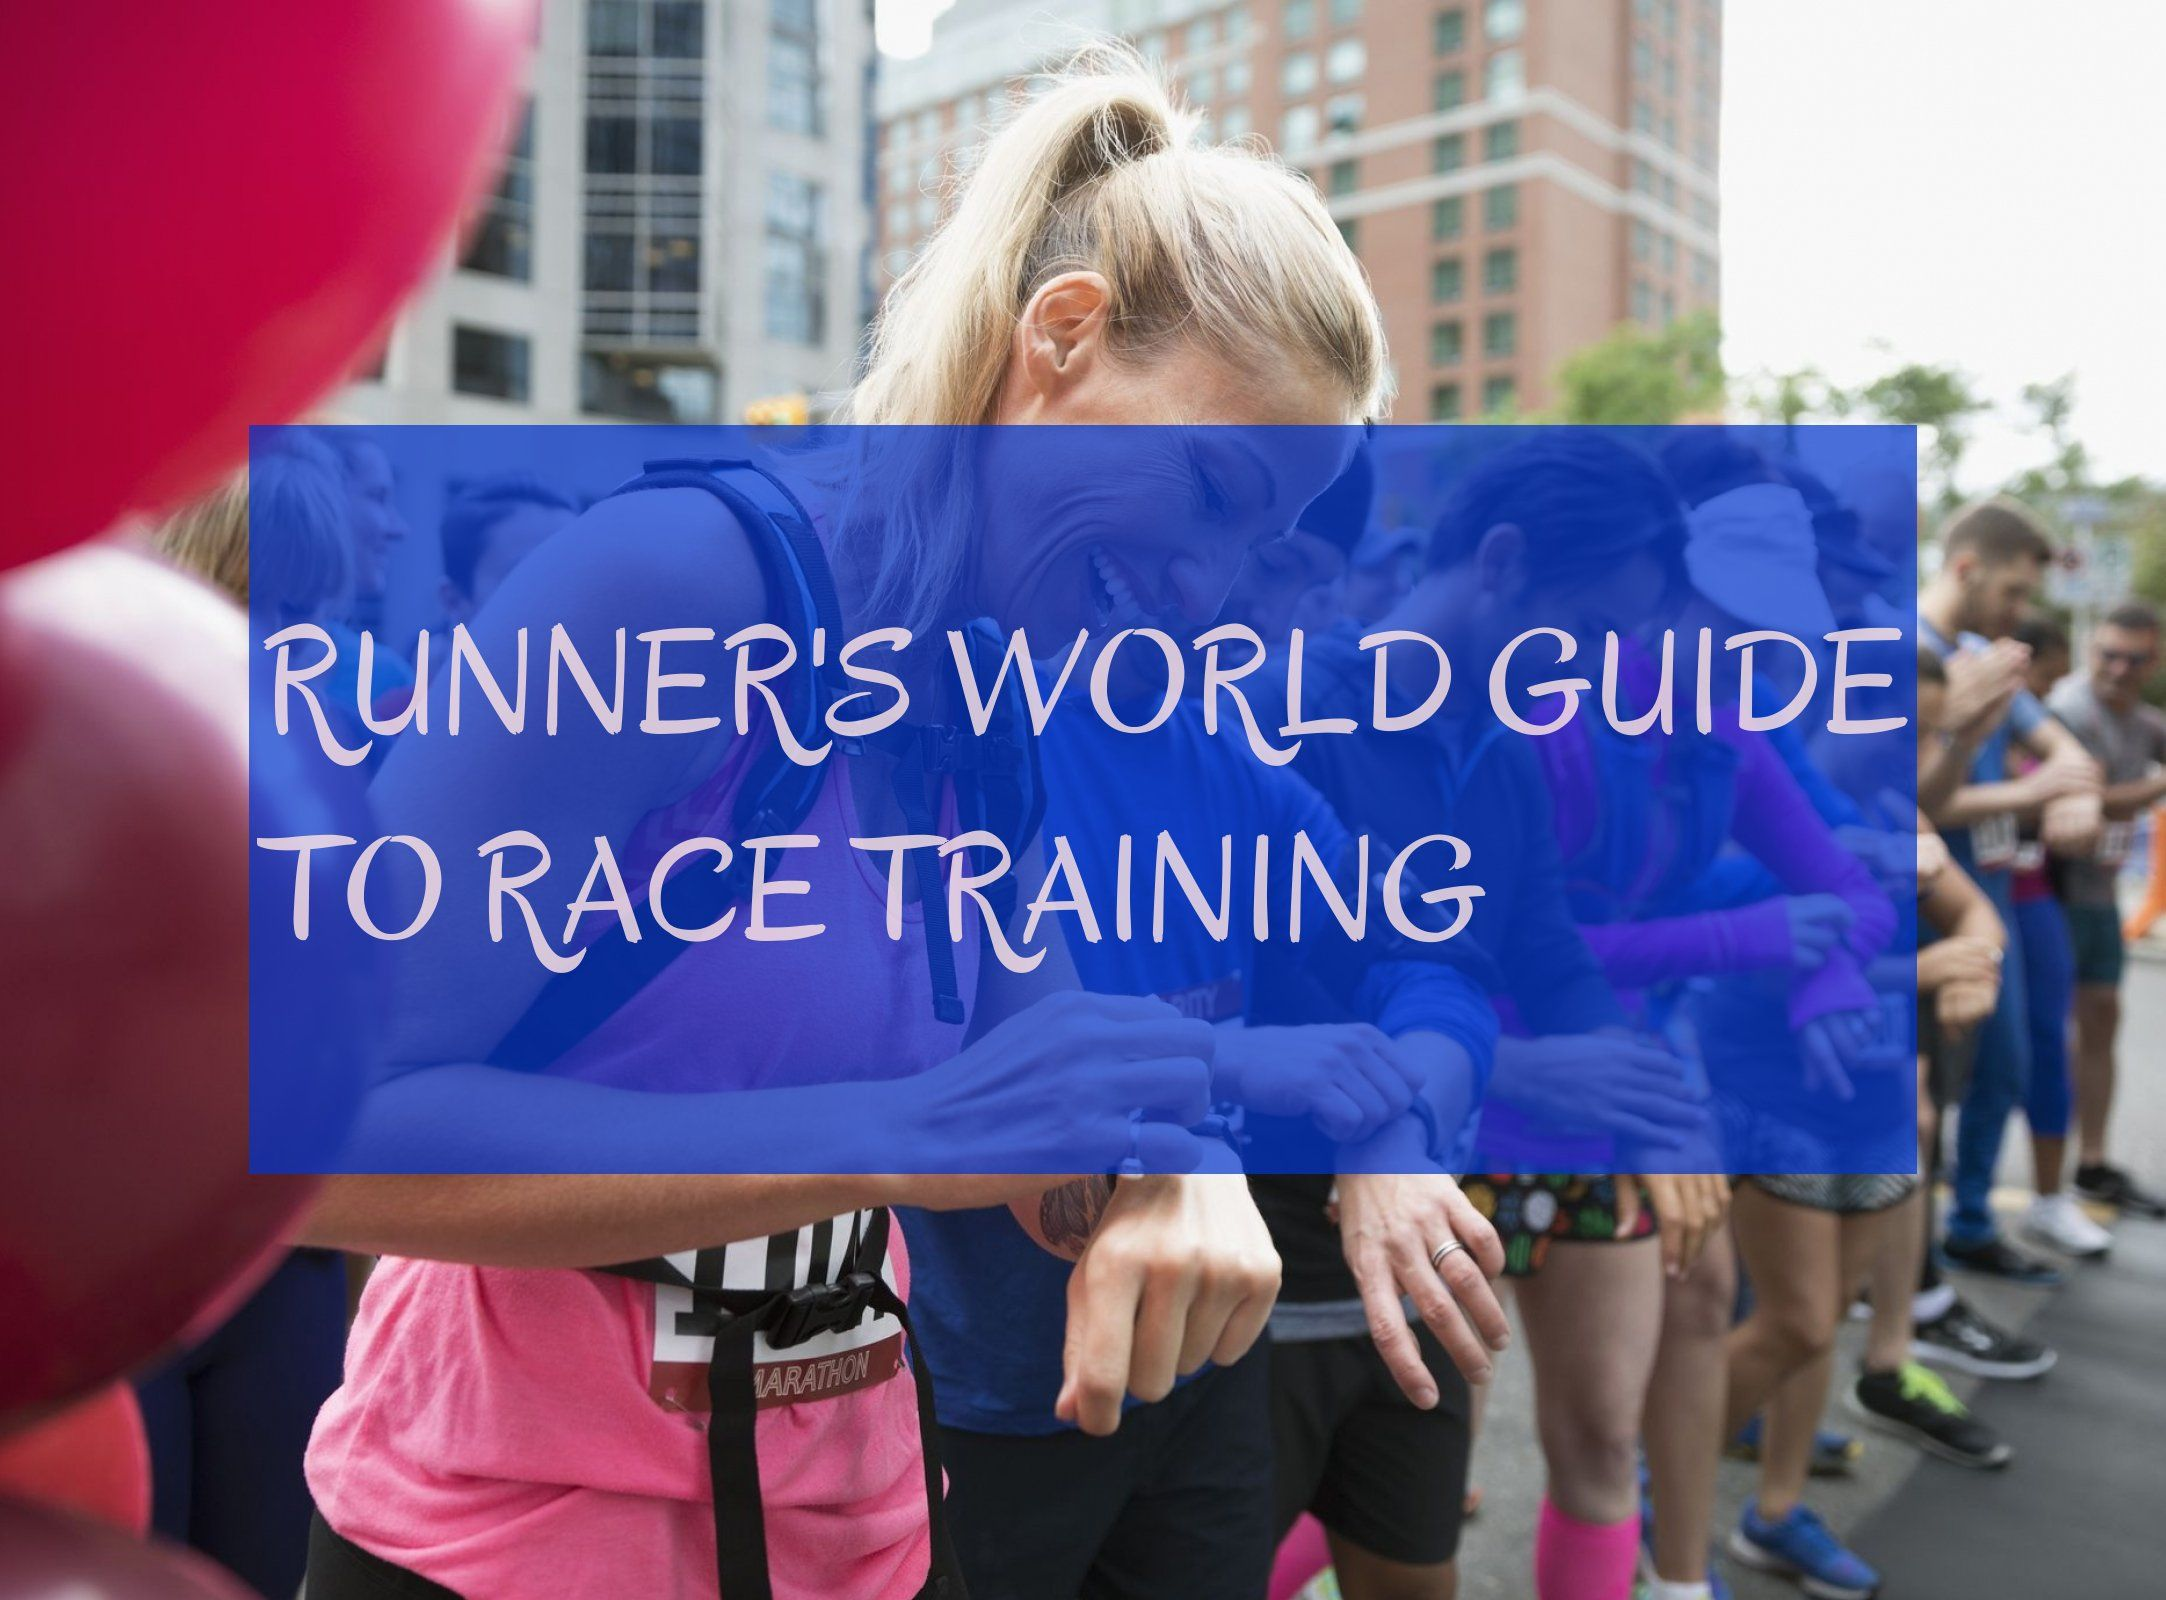 Runner 39 S World Guide To Race Training Runner's World Guide Für Das Renntraining